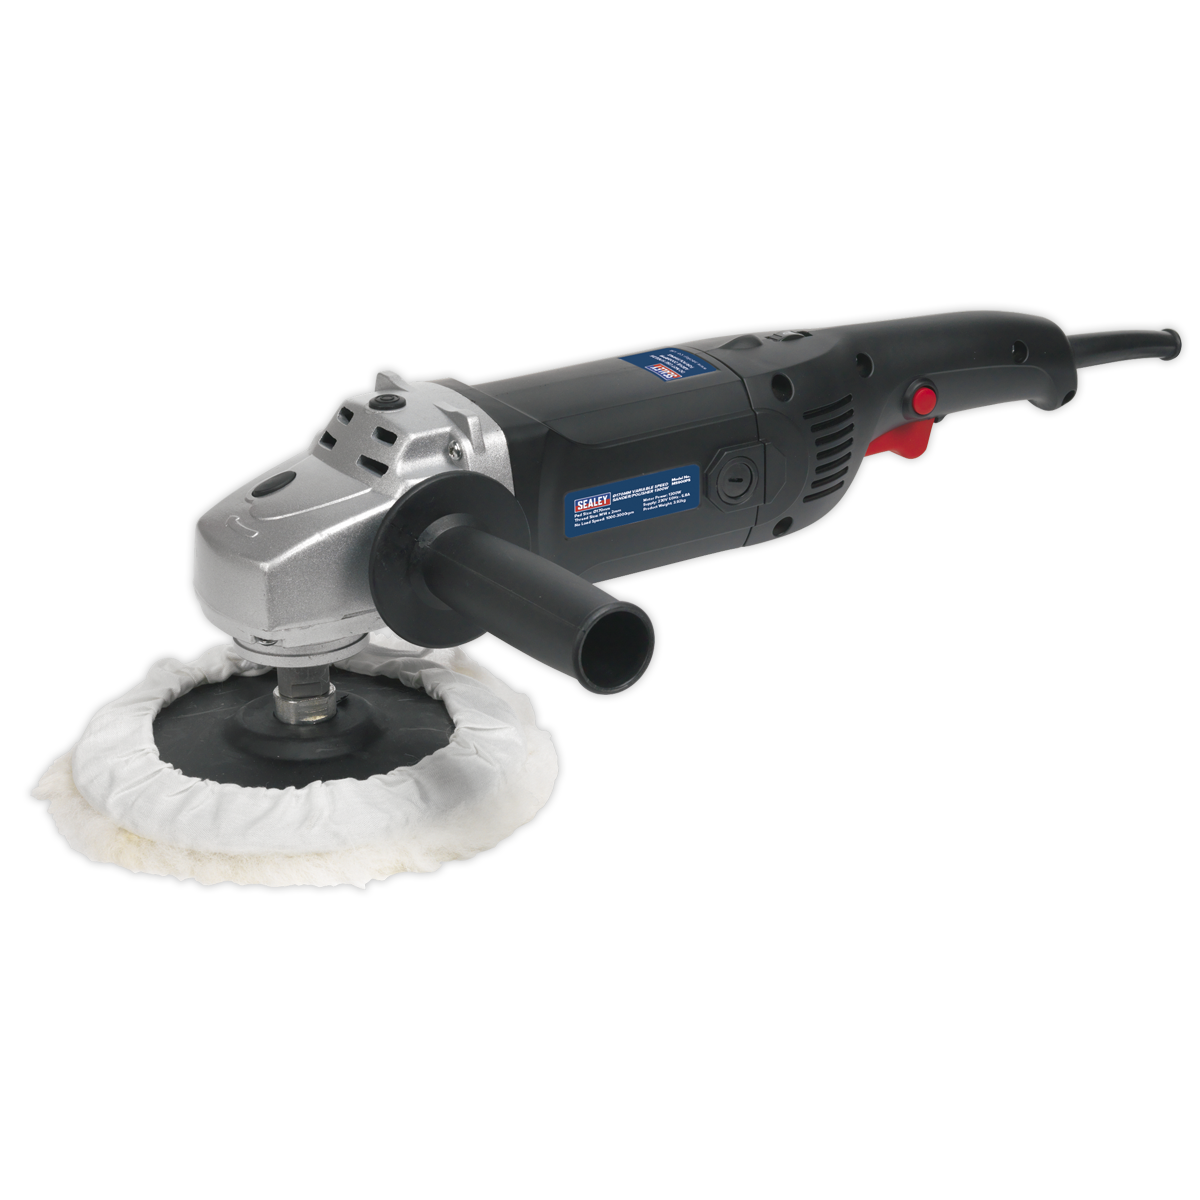 MS900PS Sealey Sander Polisher 170mm 6-Speed 1300W 230V